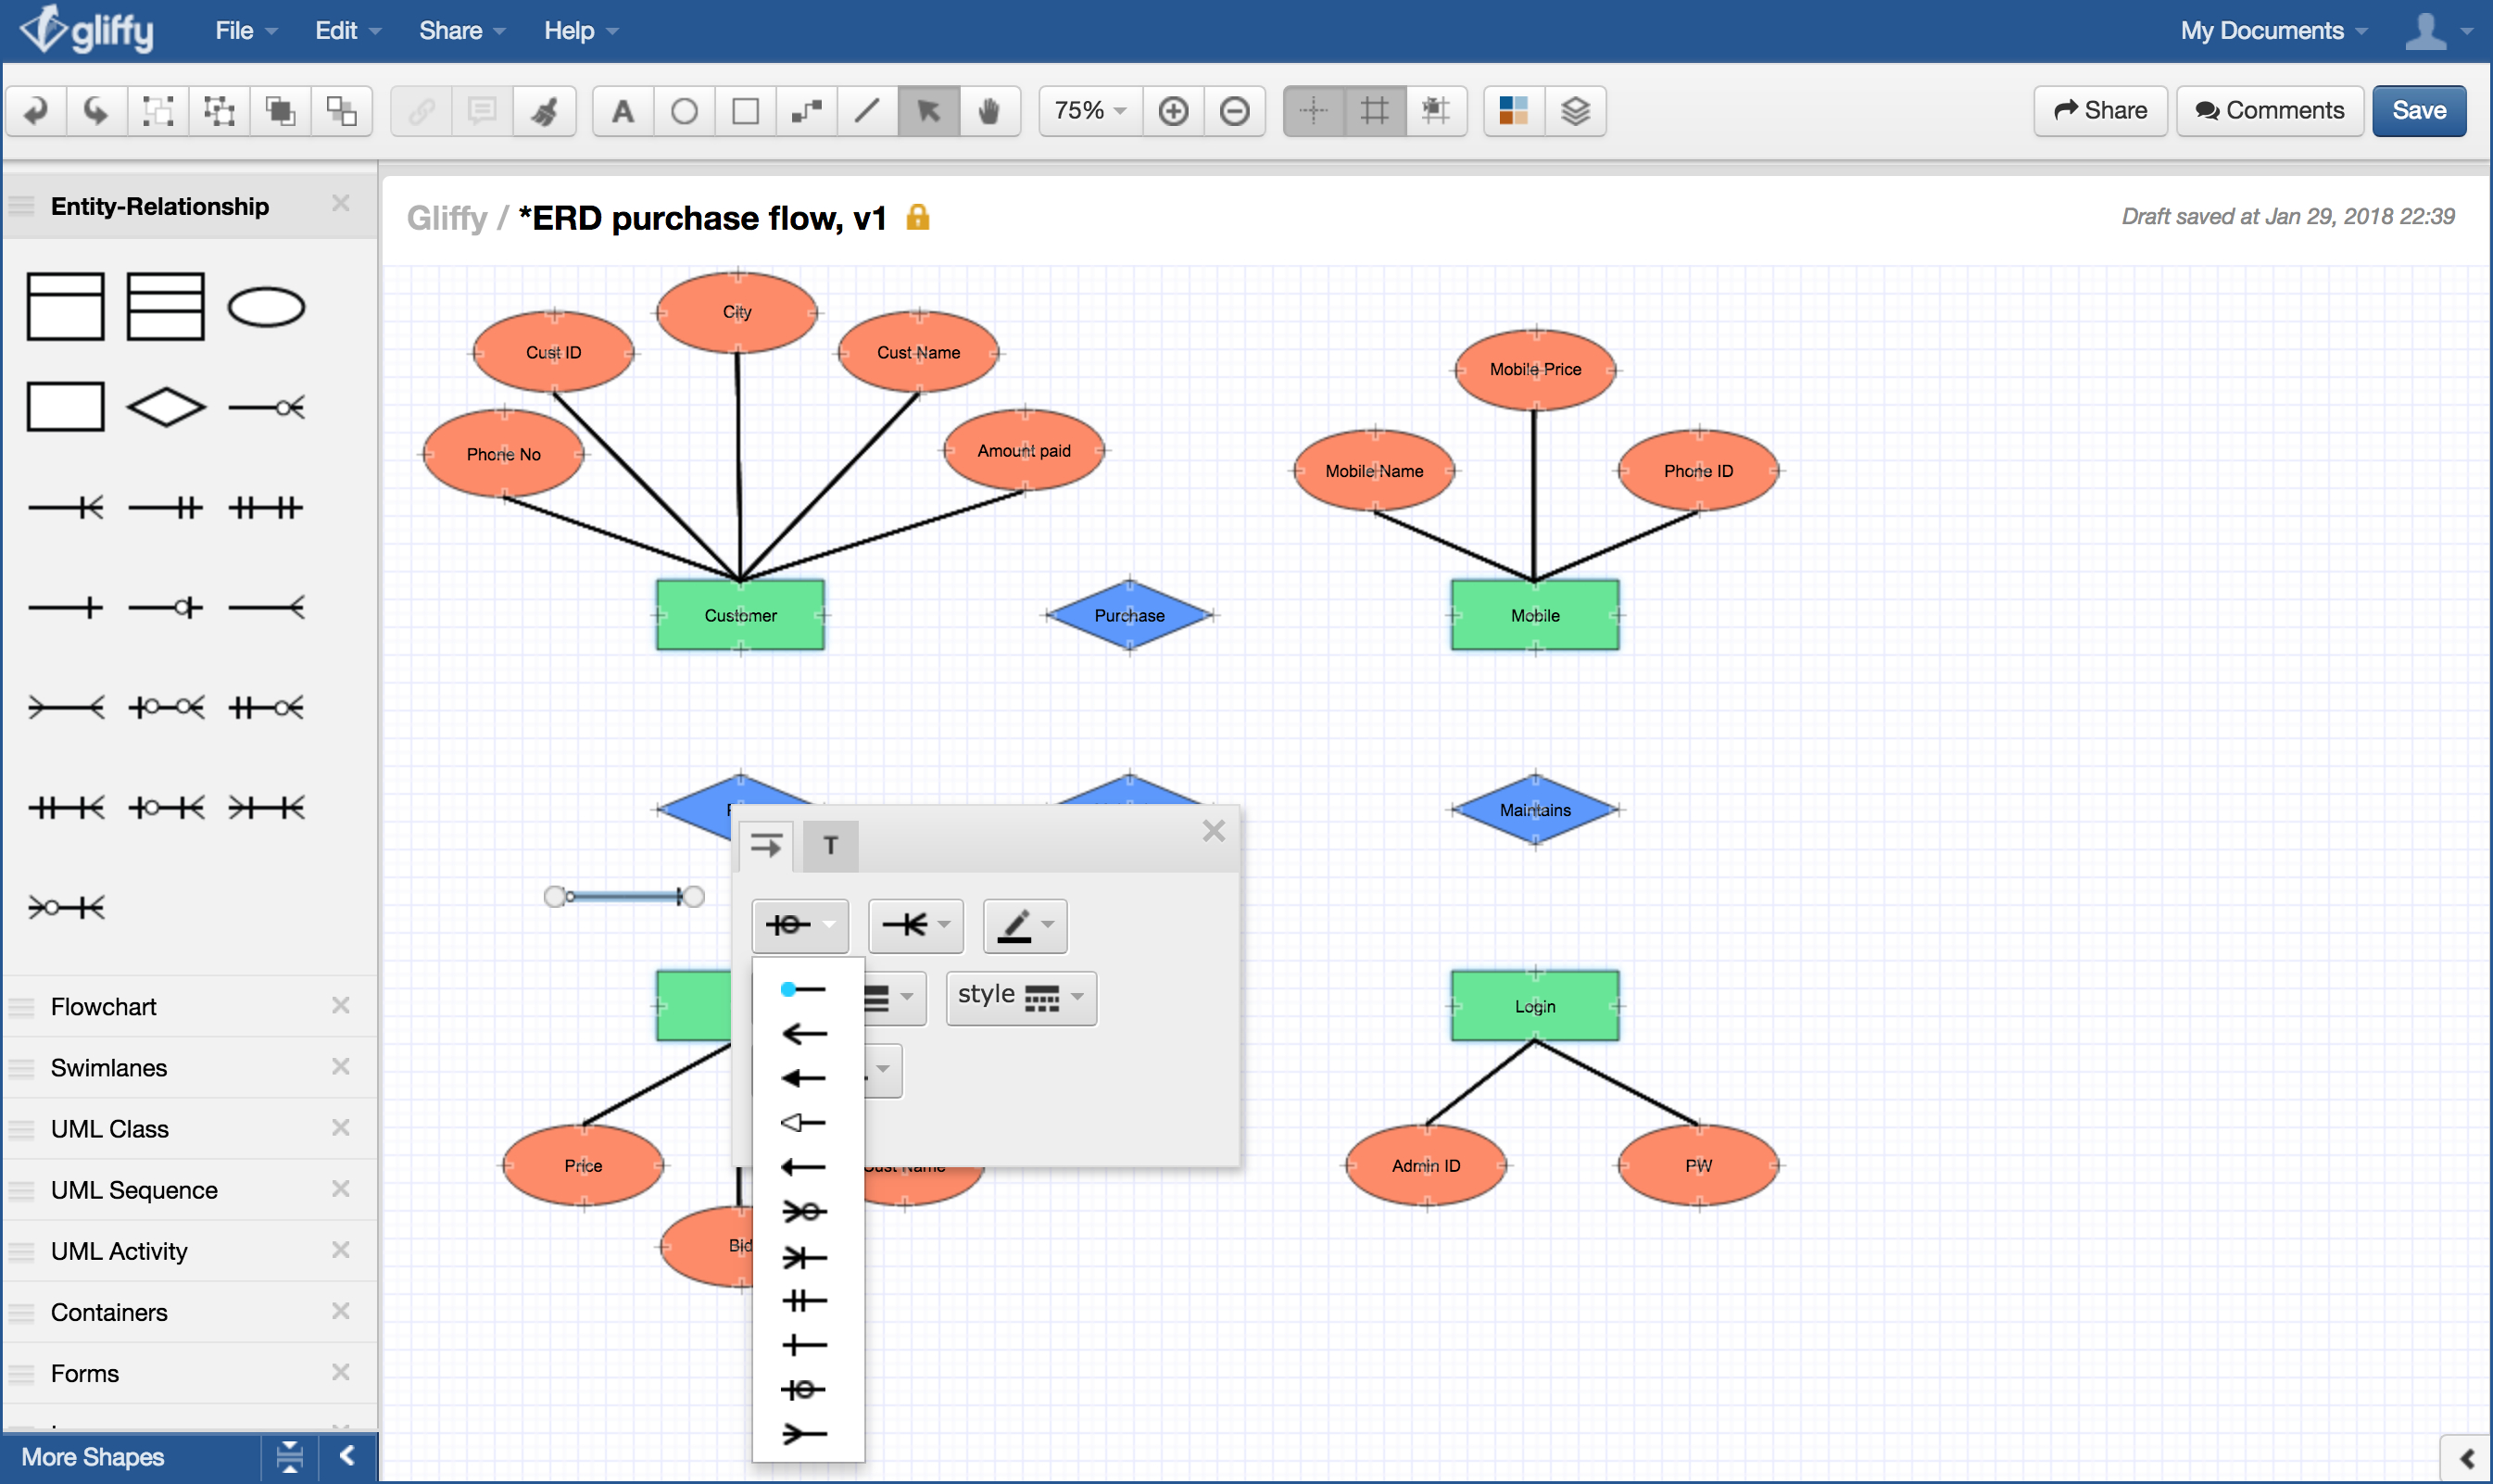 How To Draw An Entity-Relationship Diagram in Design A Er Diagram